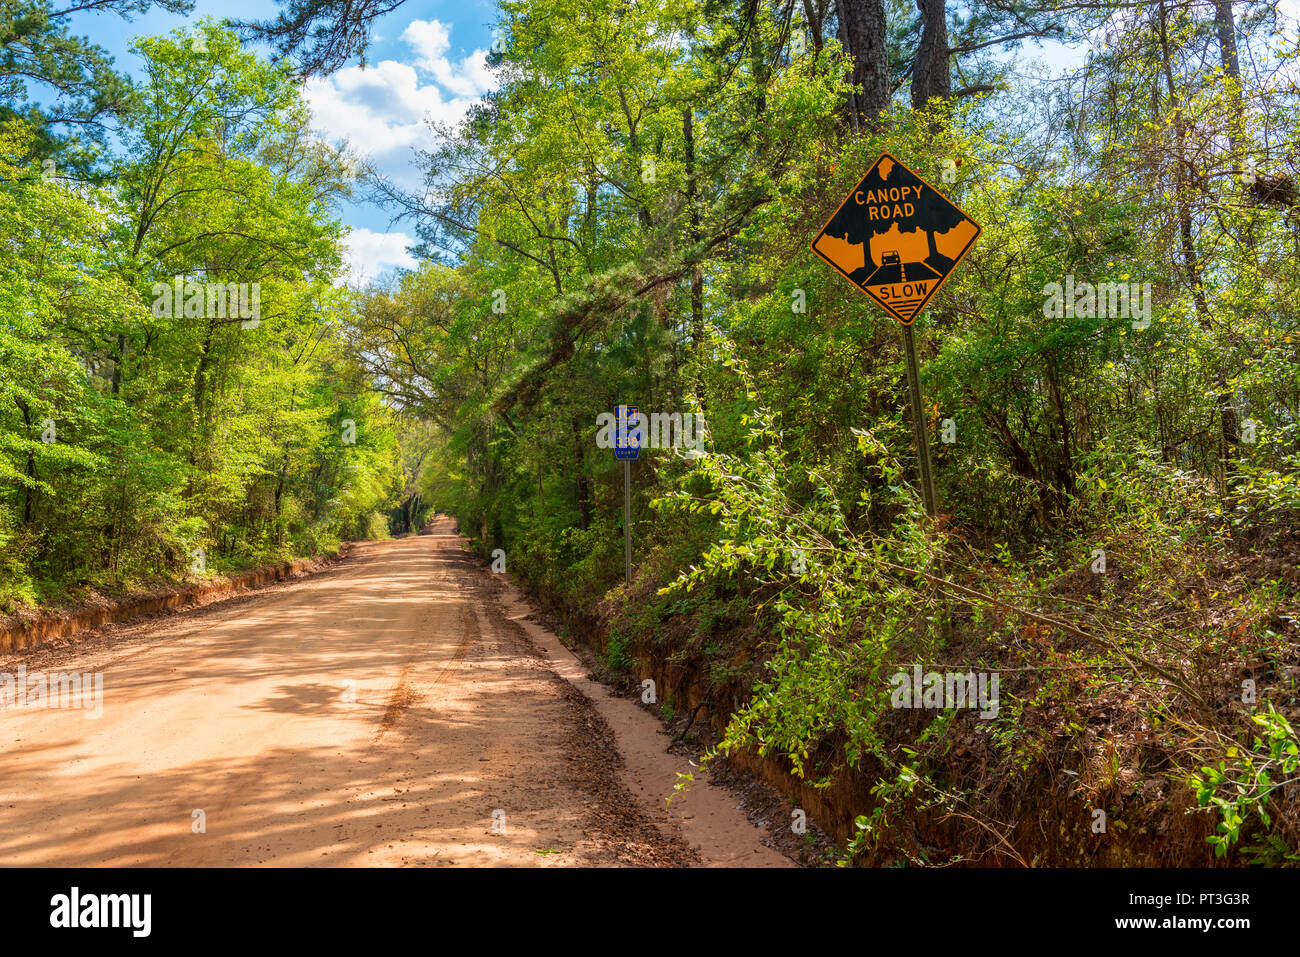 Canopy Road in Leon County Florida USA, close to the border with Georgia Stock Photo